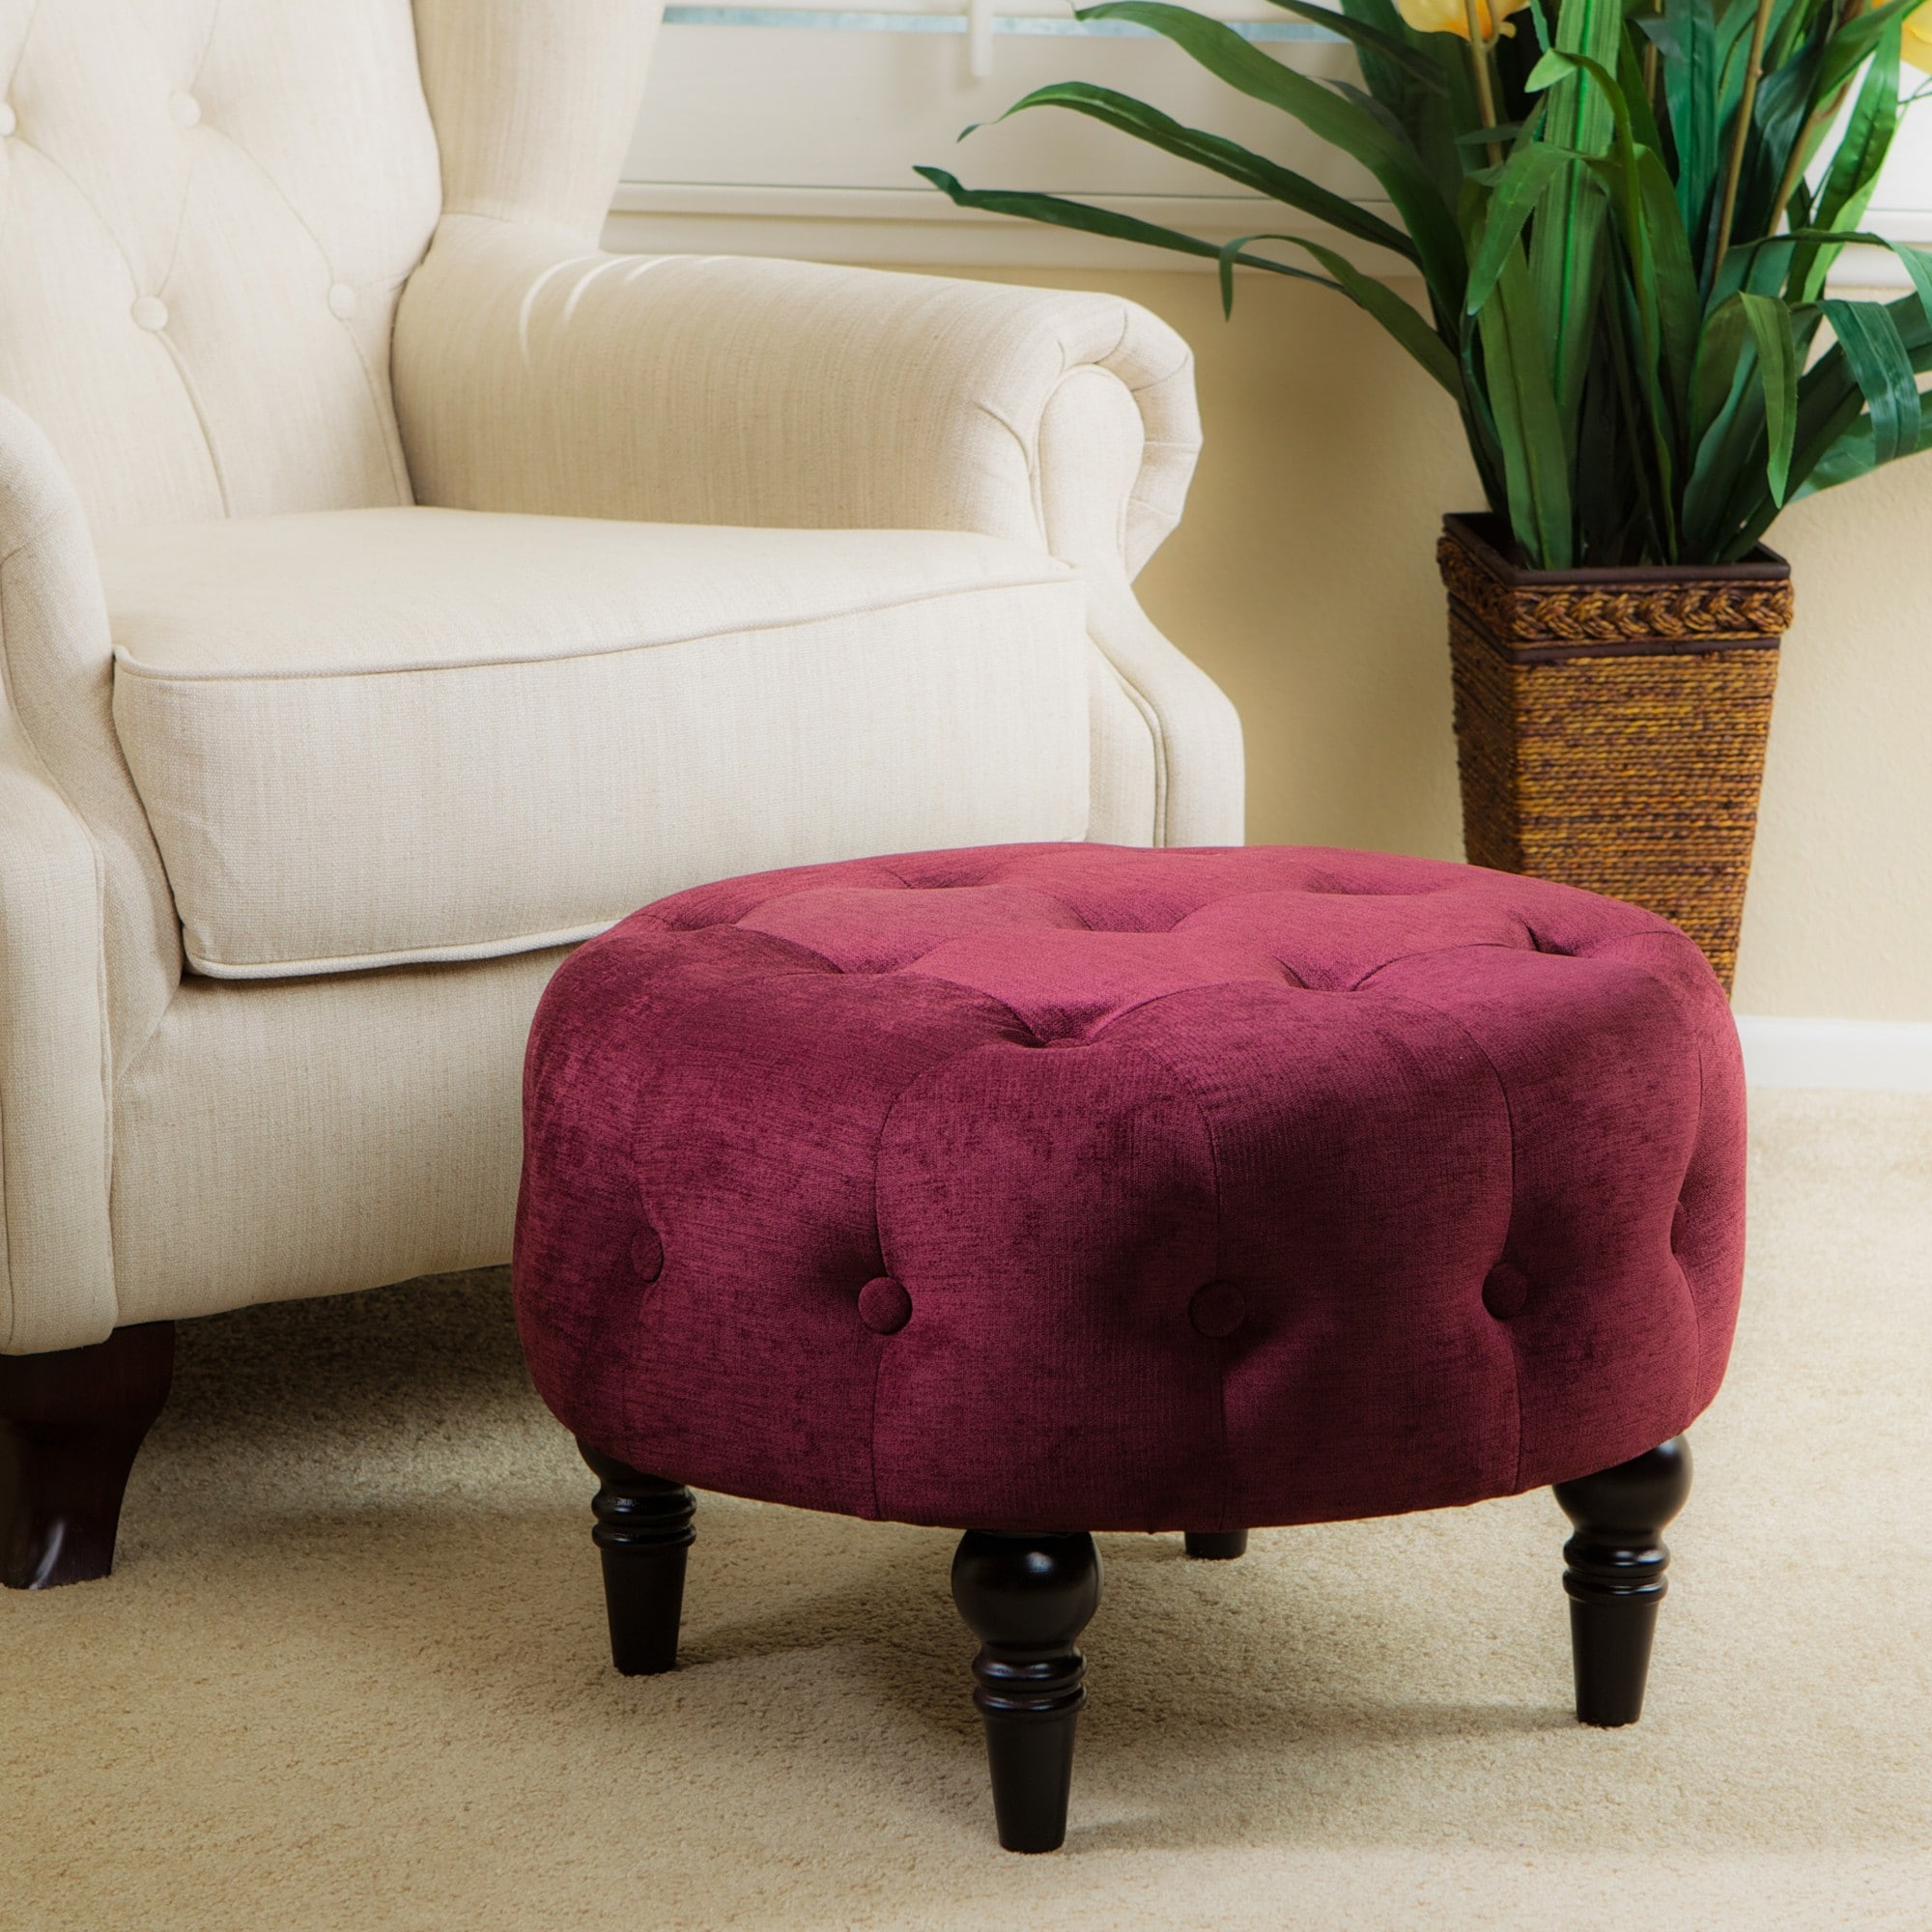 Round Purple Tufted Ottoman Overstock Shopping Great